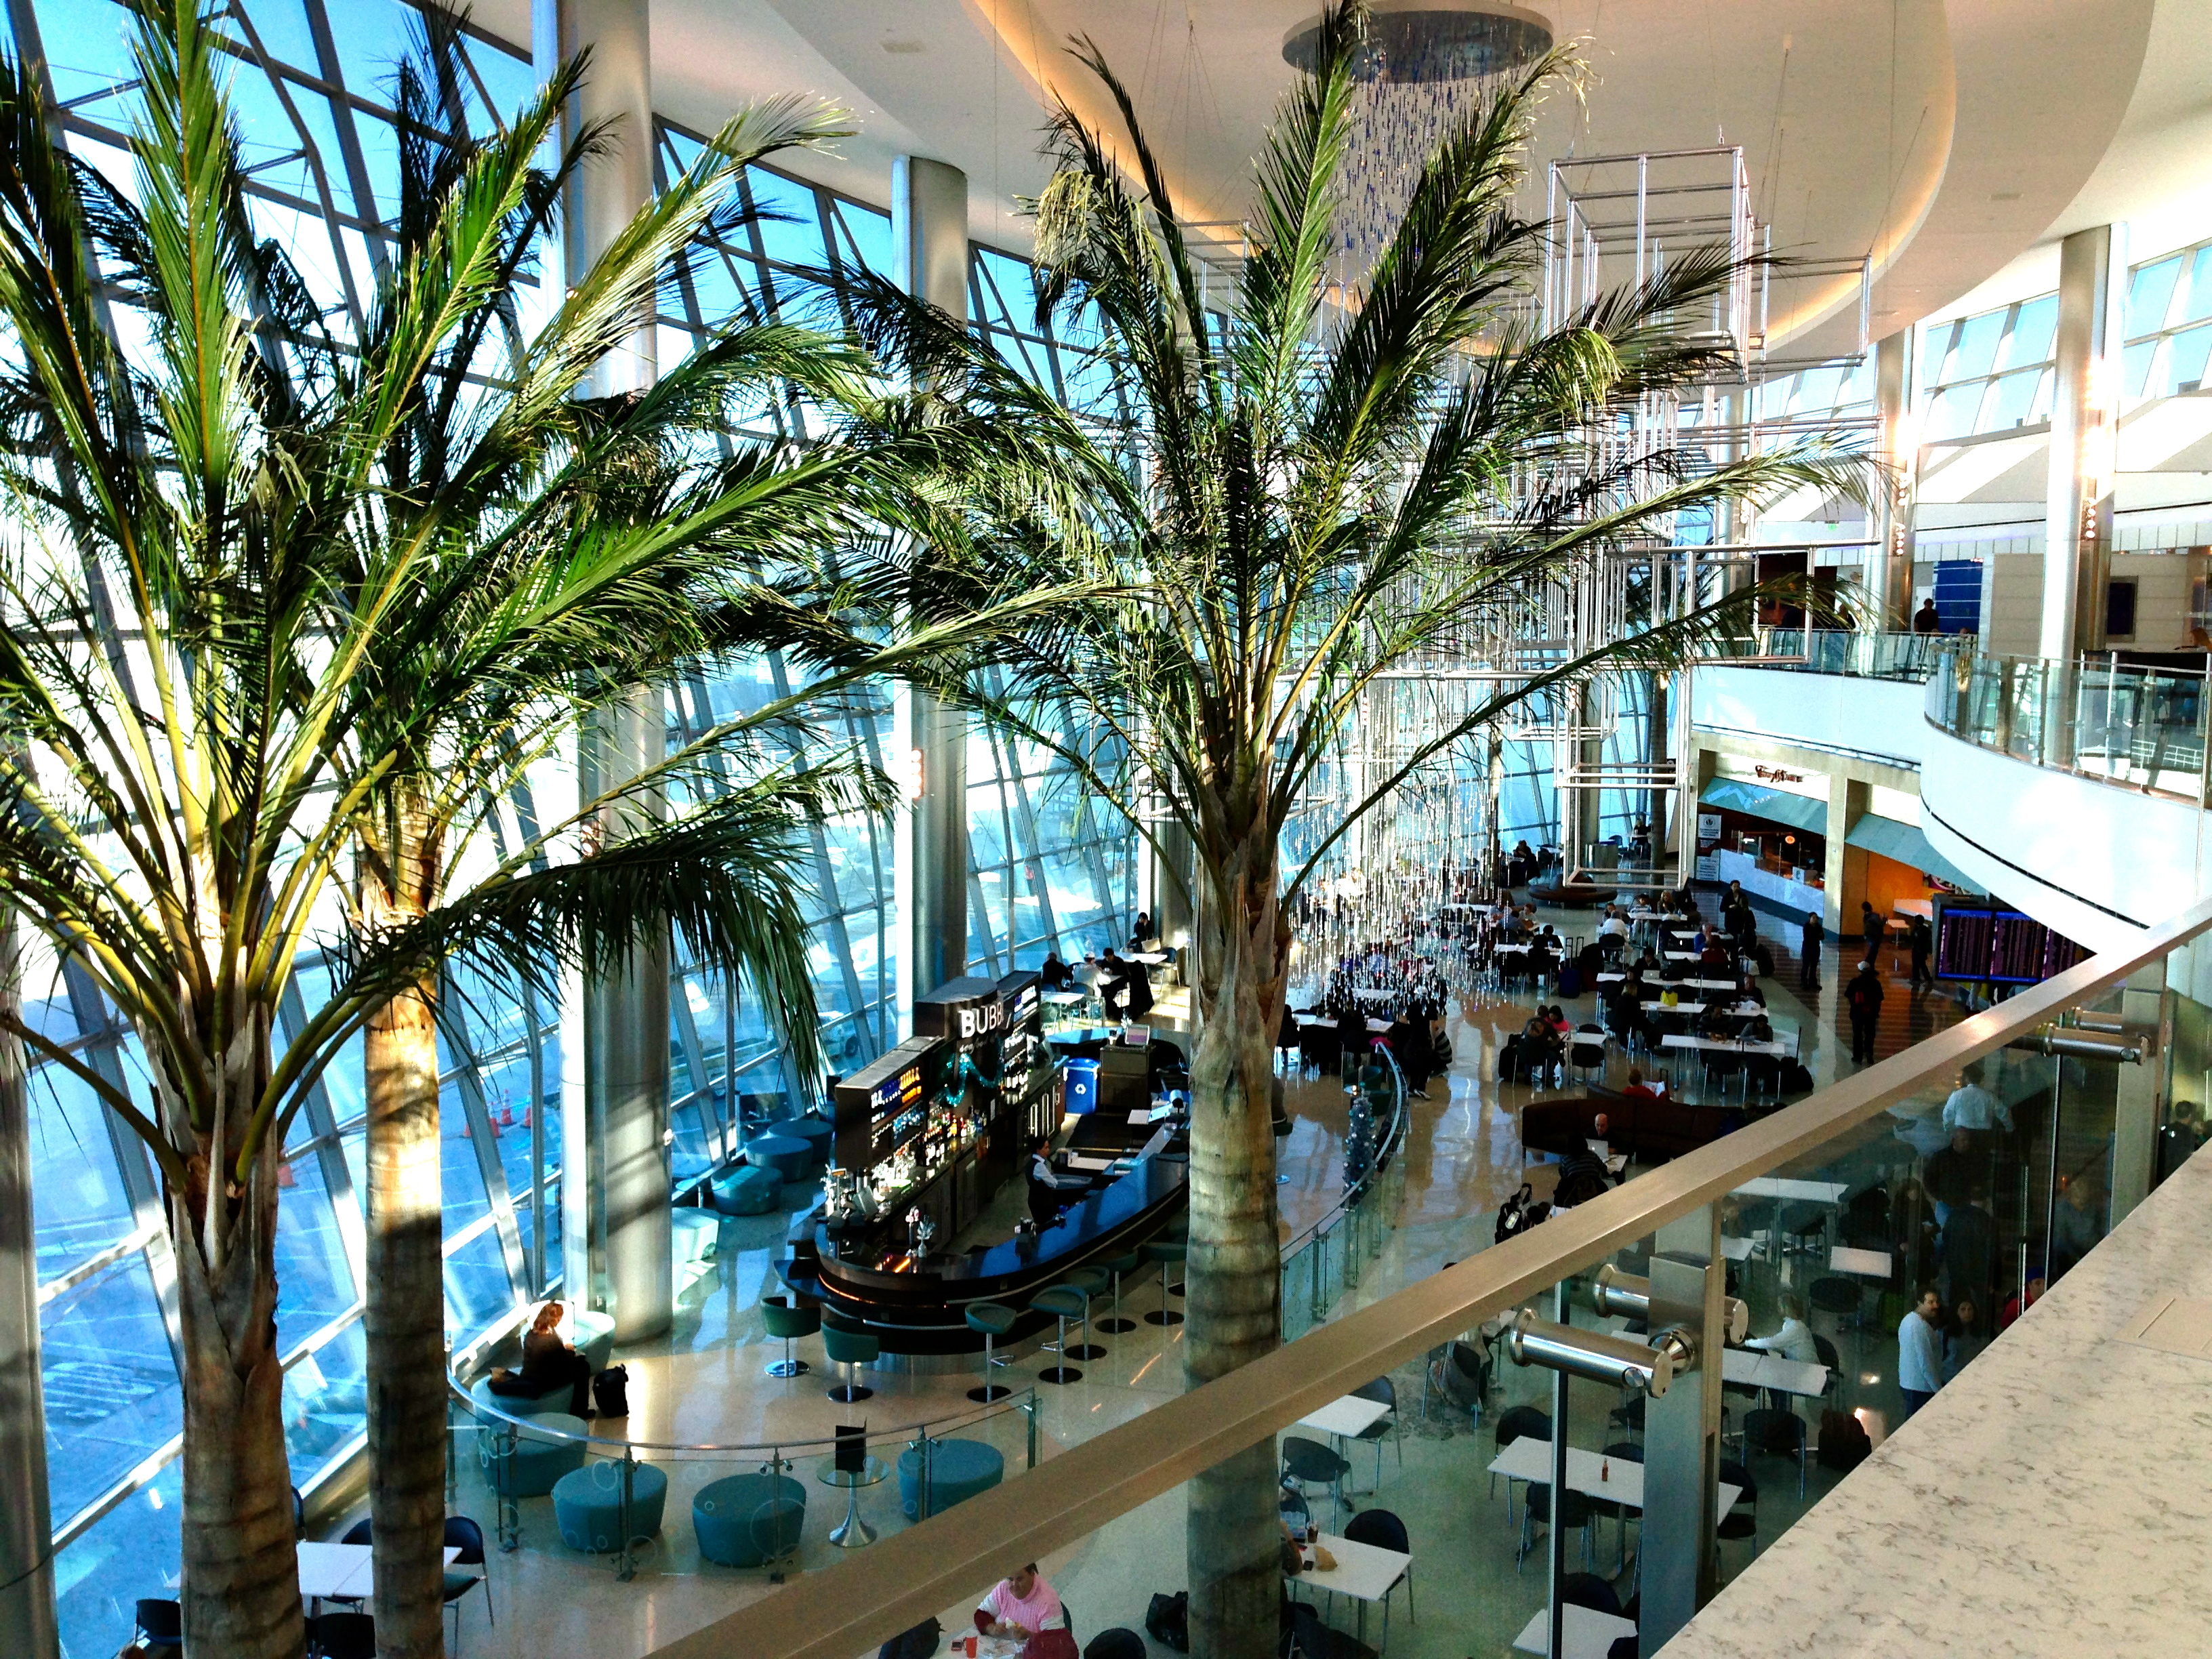 United Club San Diego Airport Lounge View from Outdoor Terrace